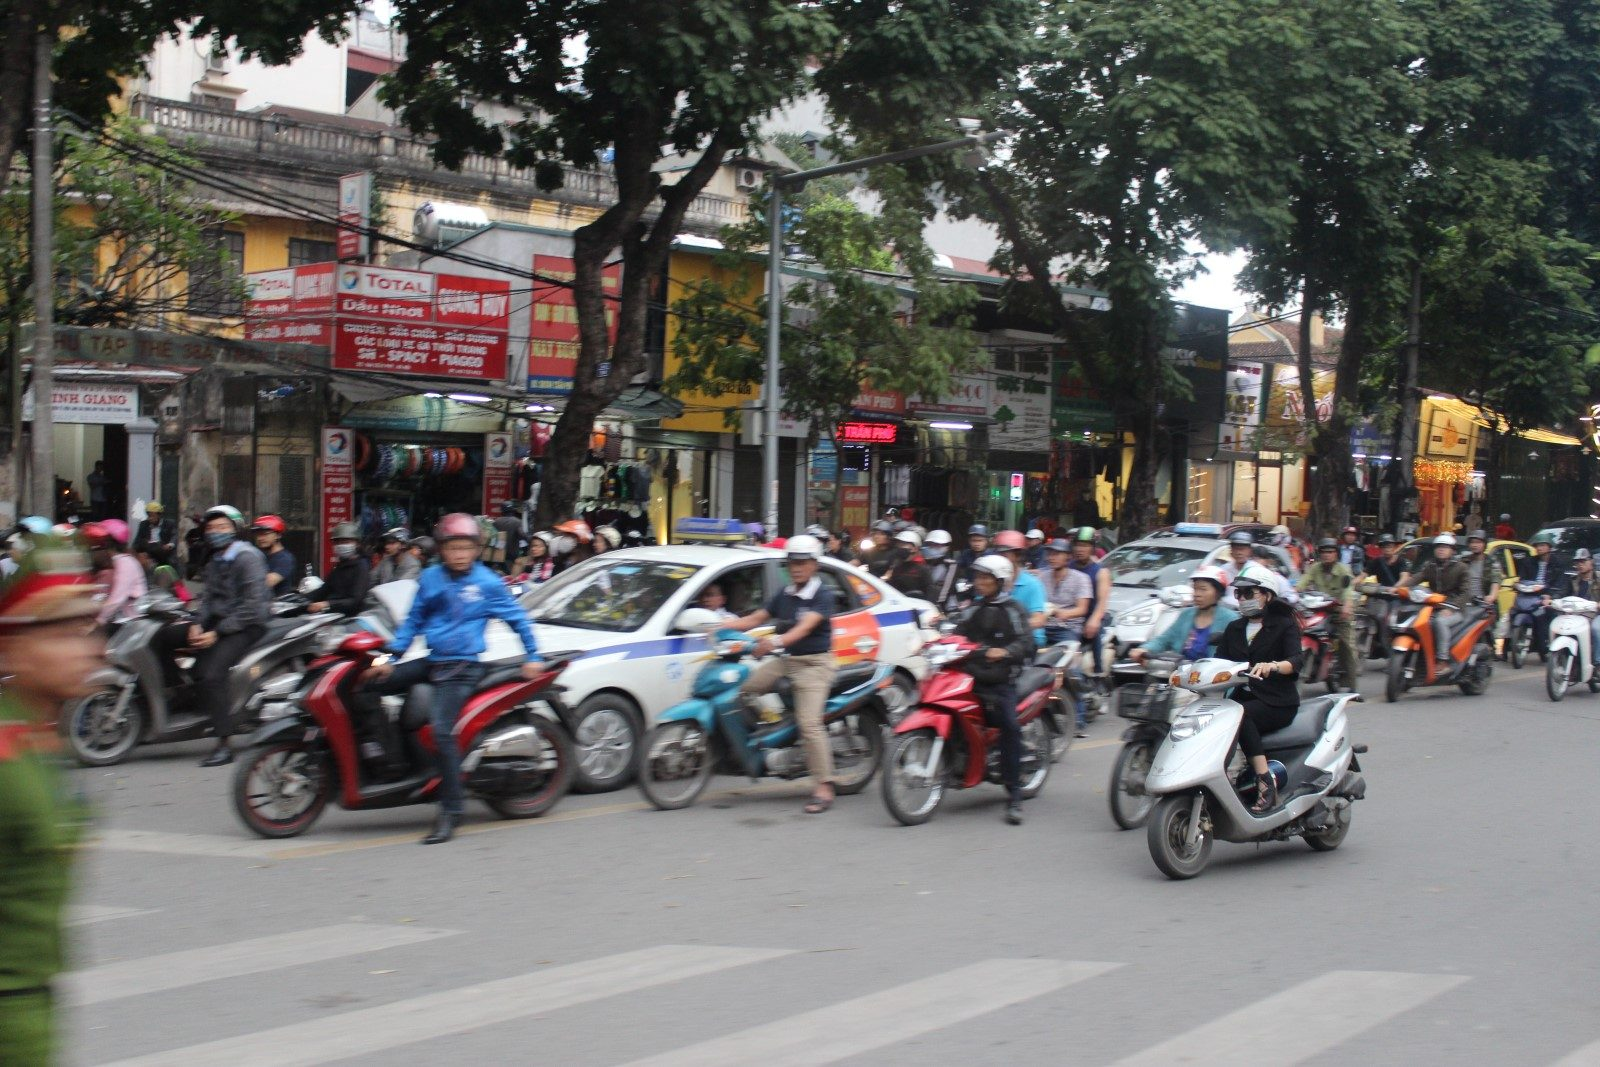 Impression from Vietnam (Hanoi)